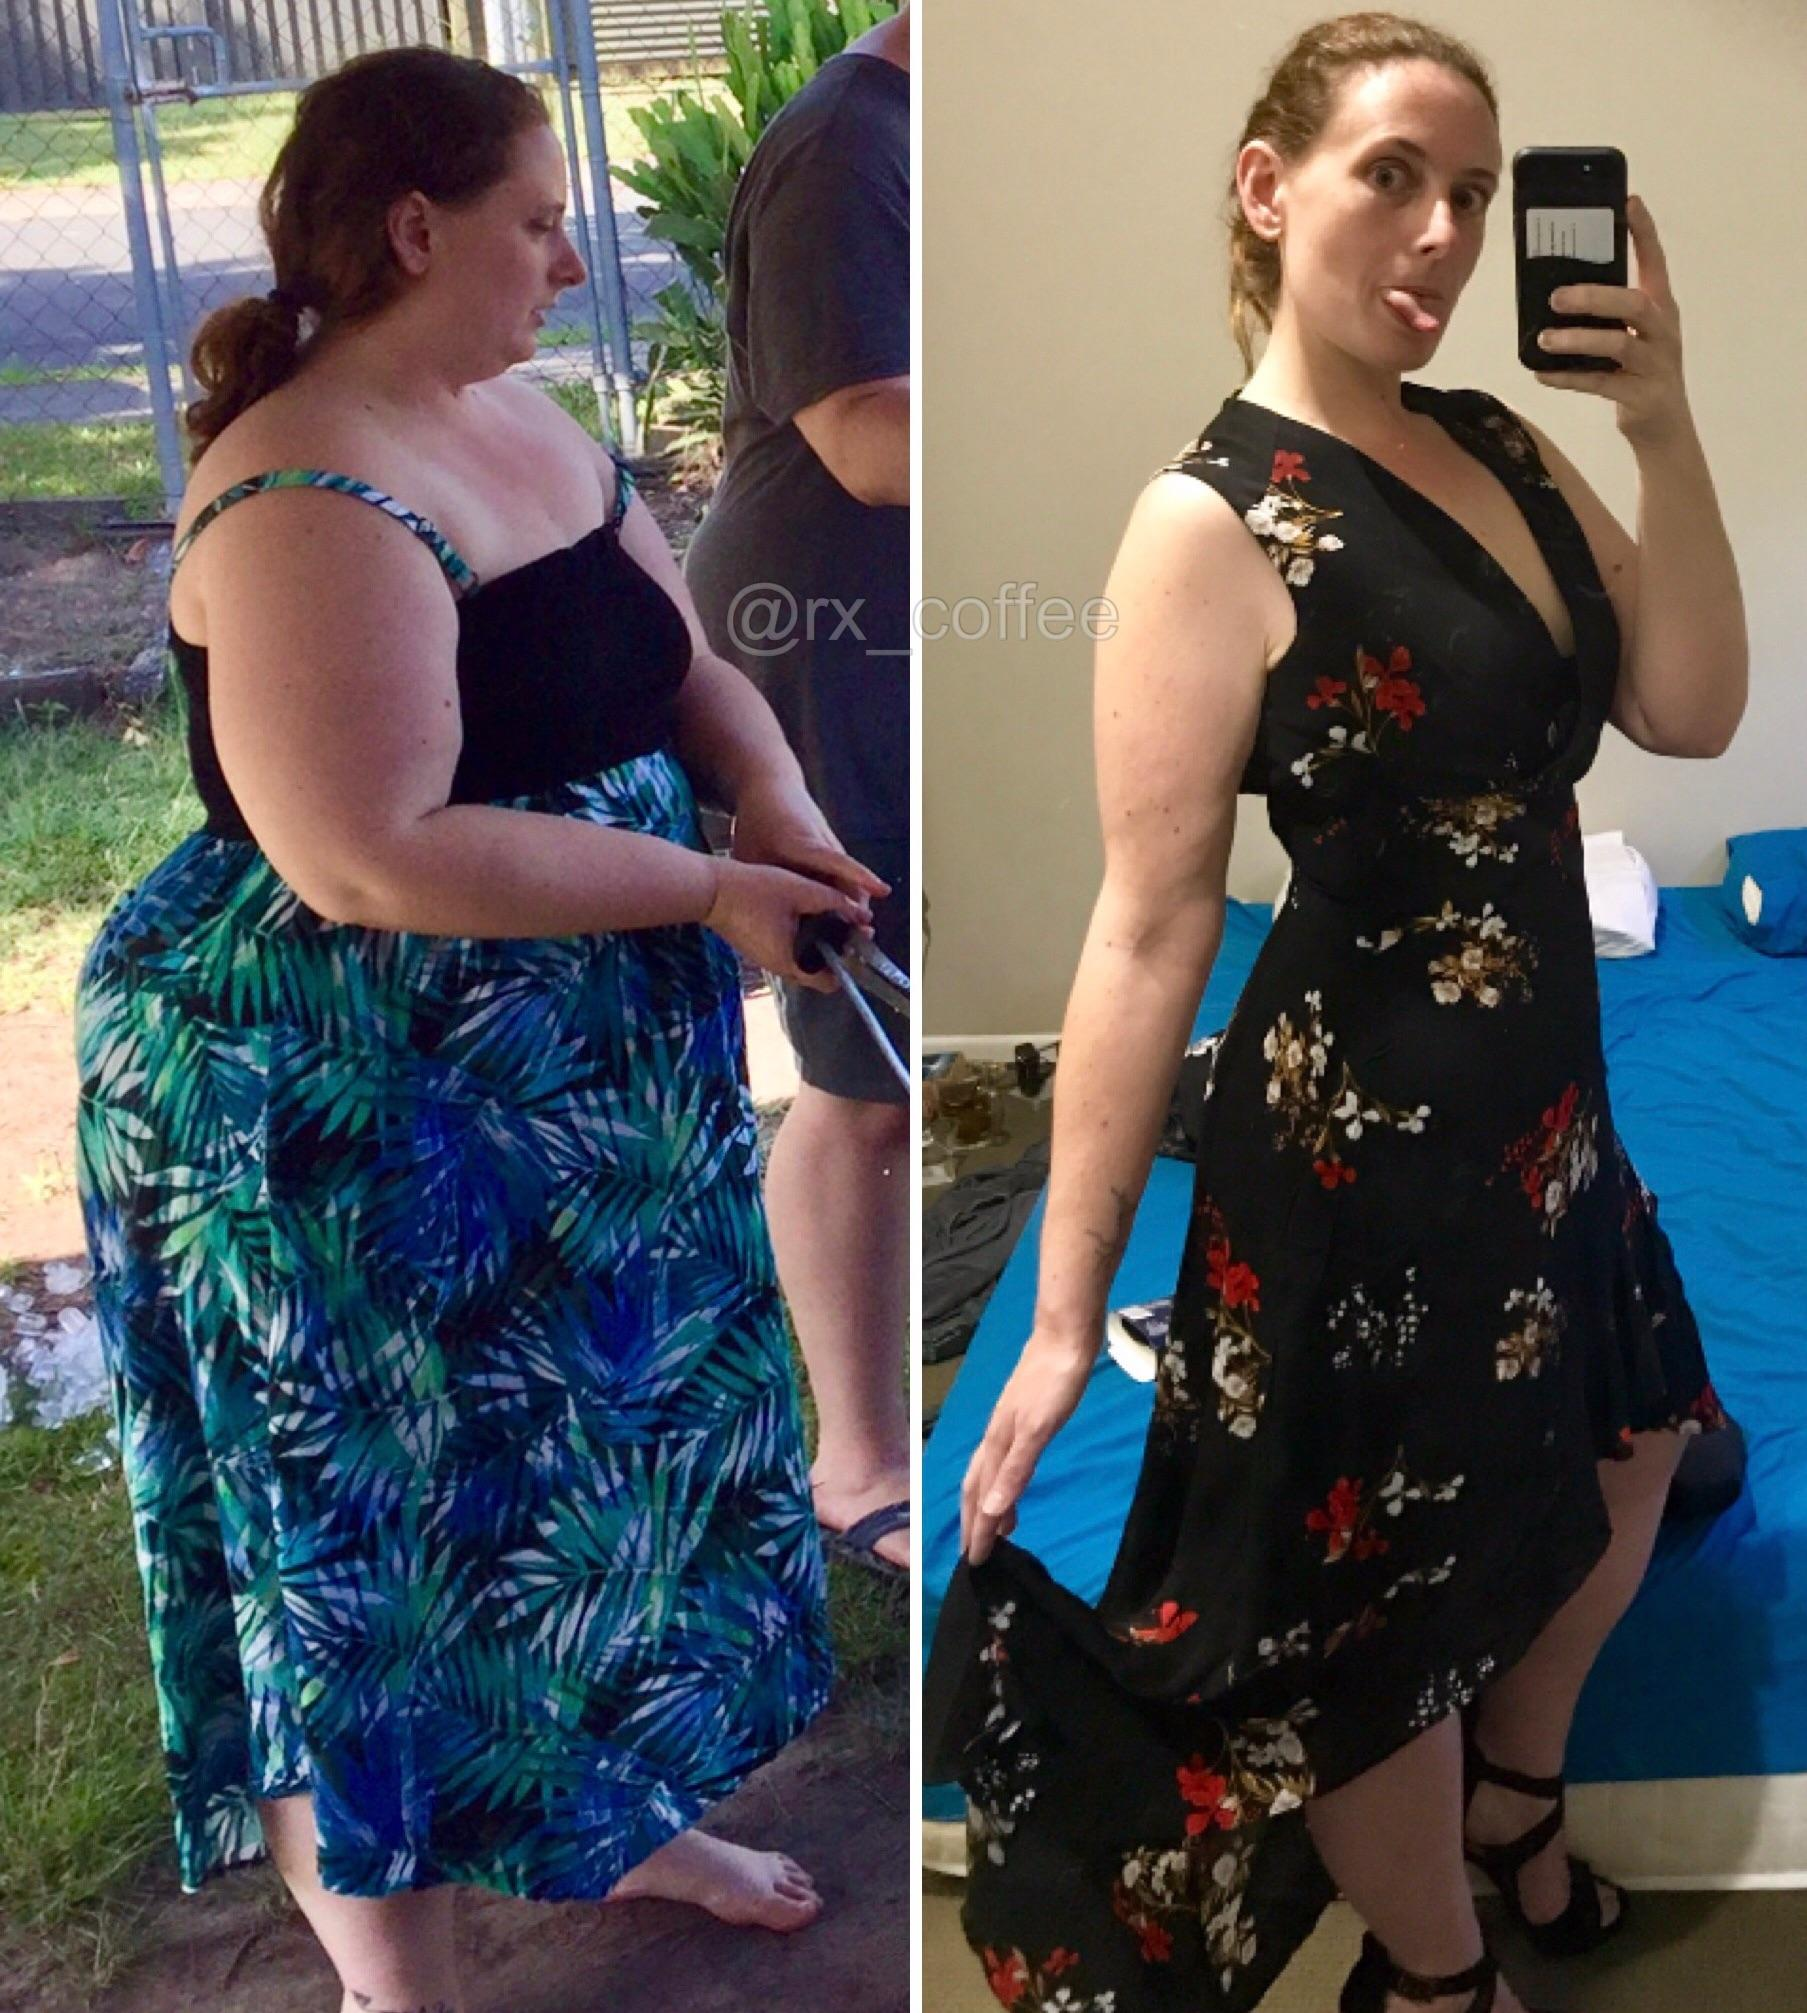 5 feet 9 Female 156 lbs Fat Loss Before and After 320 lbs to 164 lbs